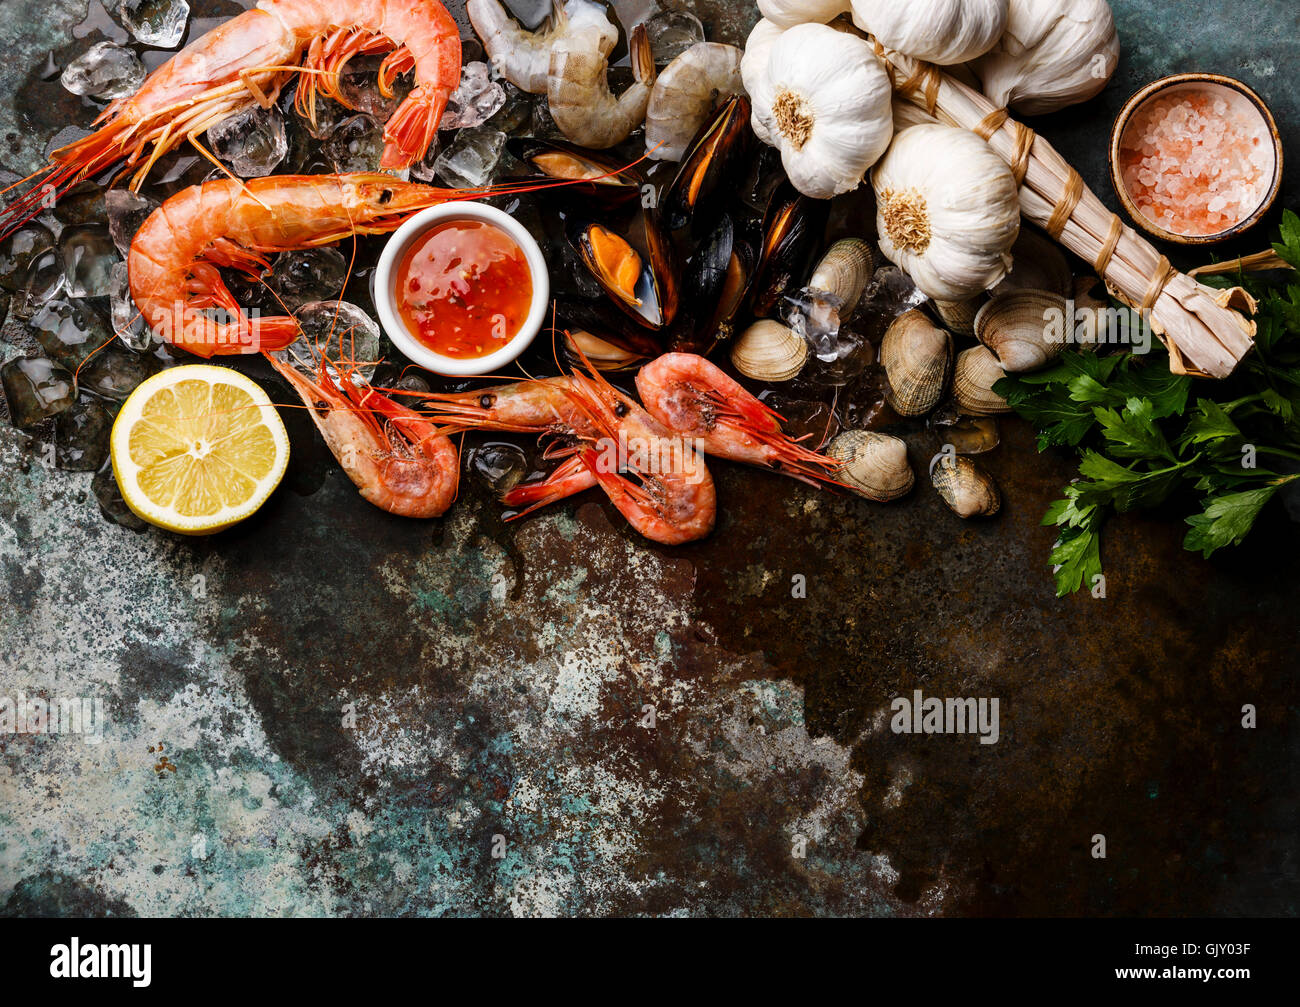 Seafood copy space Background with fresh raw Mussels, Clams, Vongole, Prawns, Shrimps and Ingredients - Stock Image